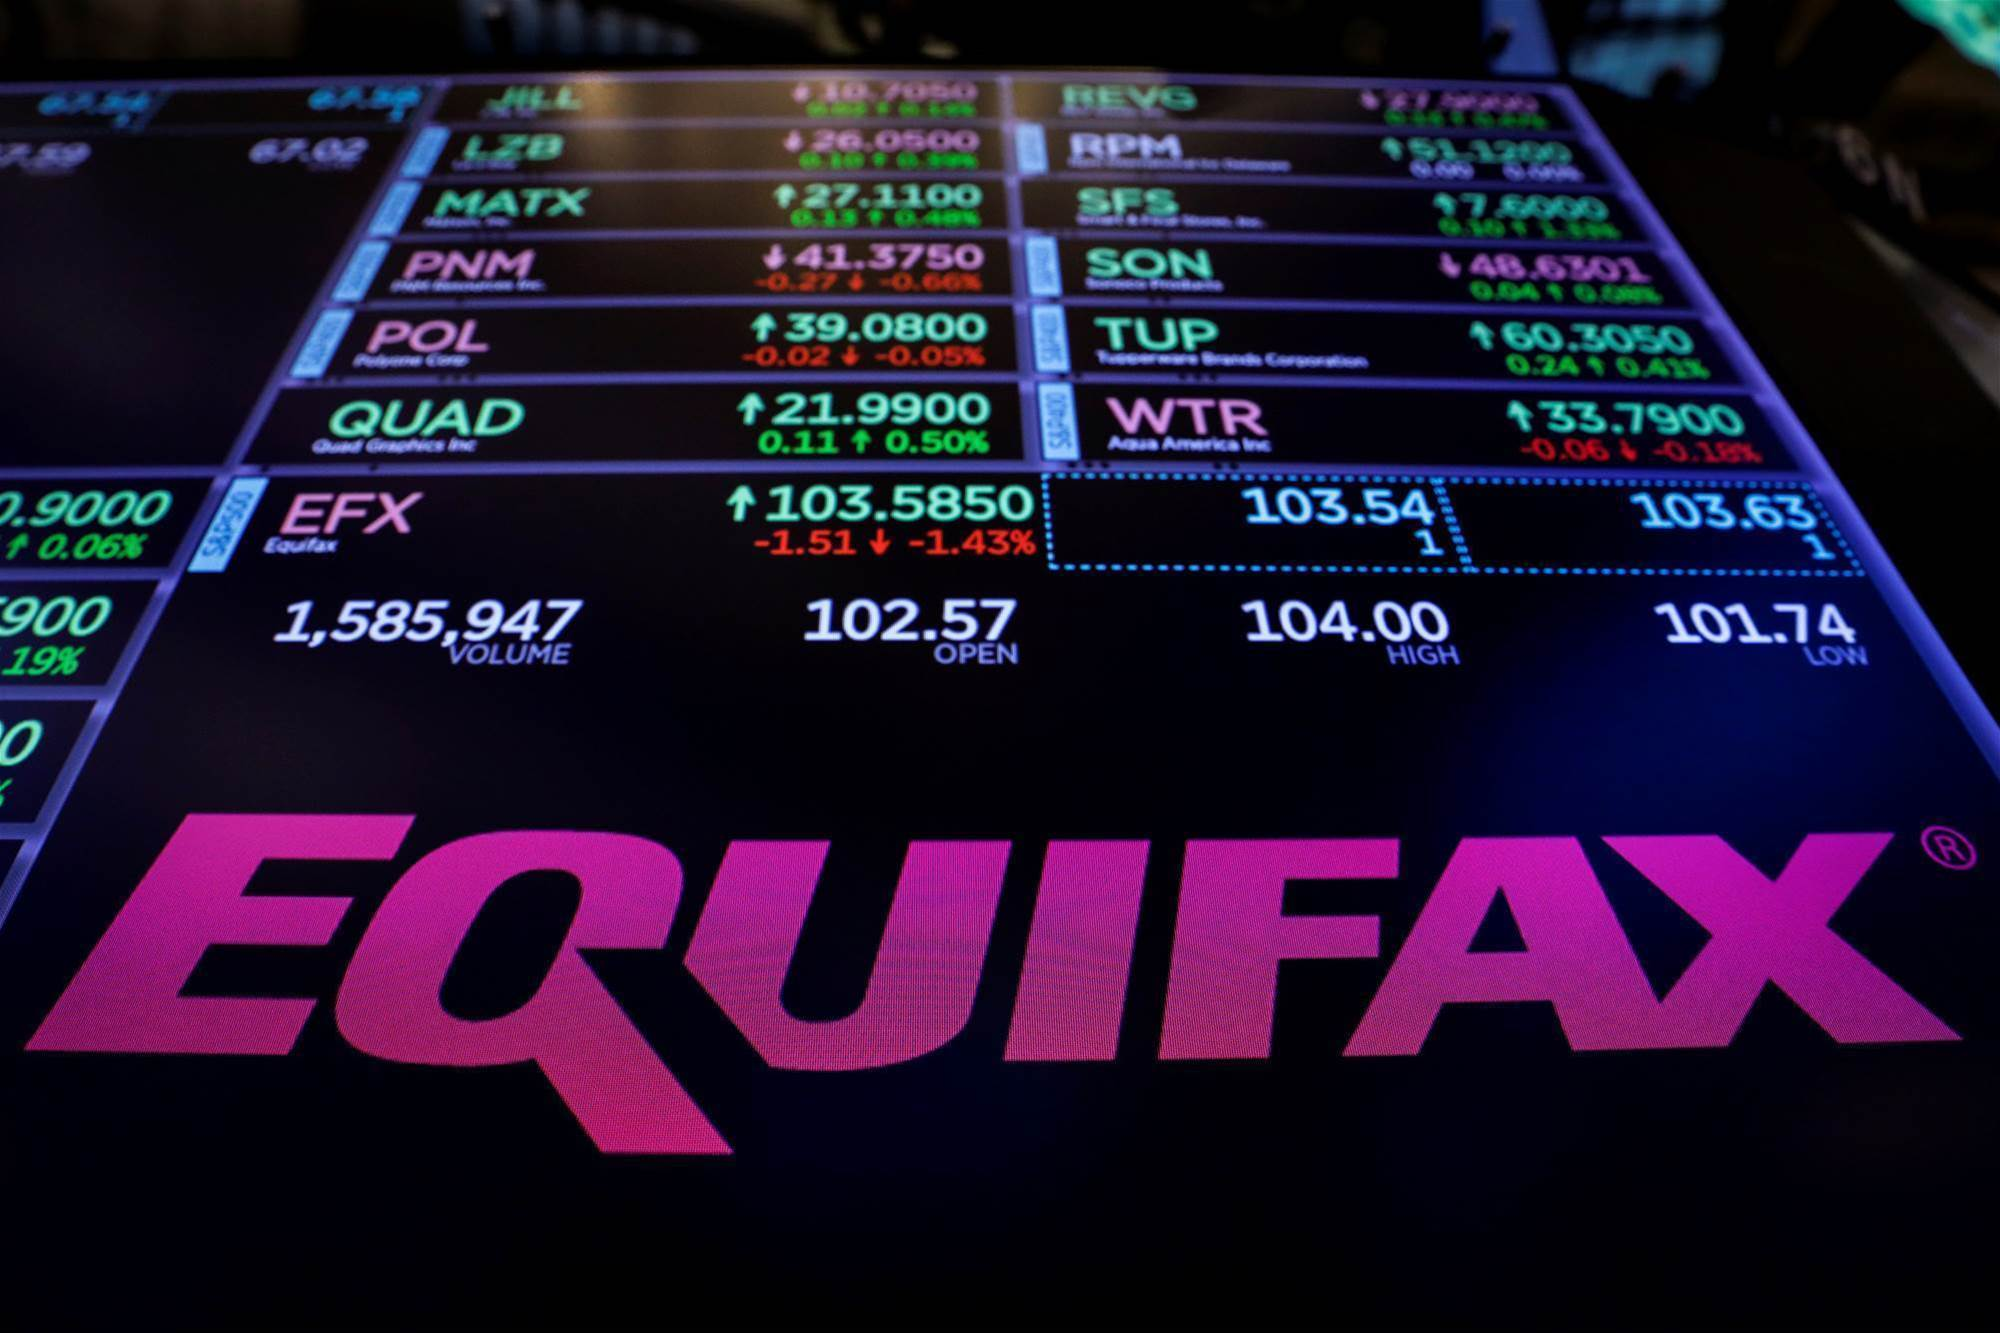 Equifax was alerted to security vulnerability in March